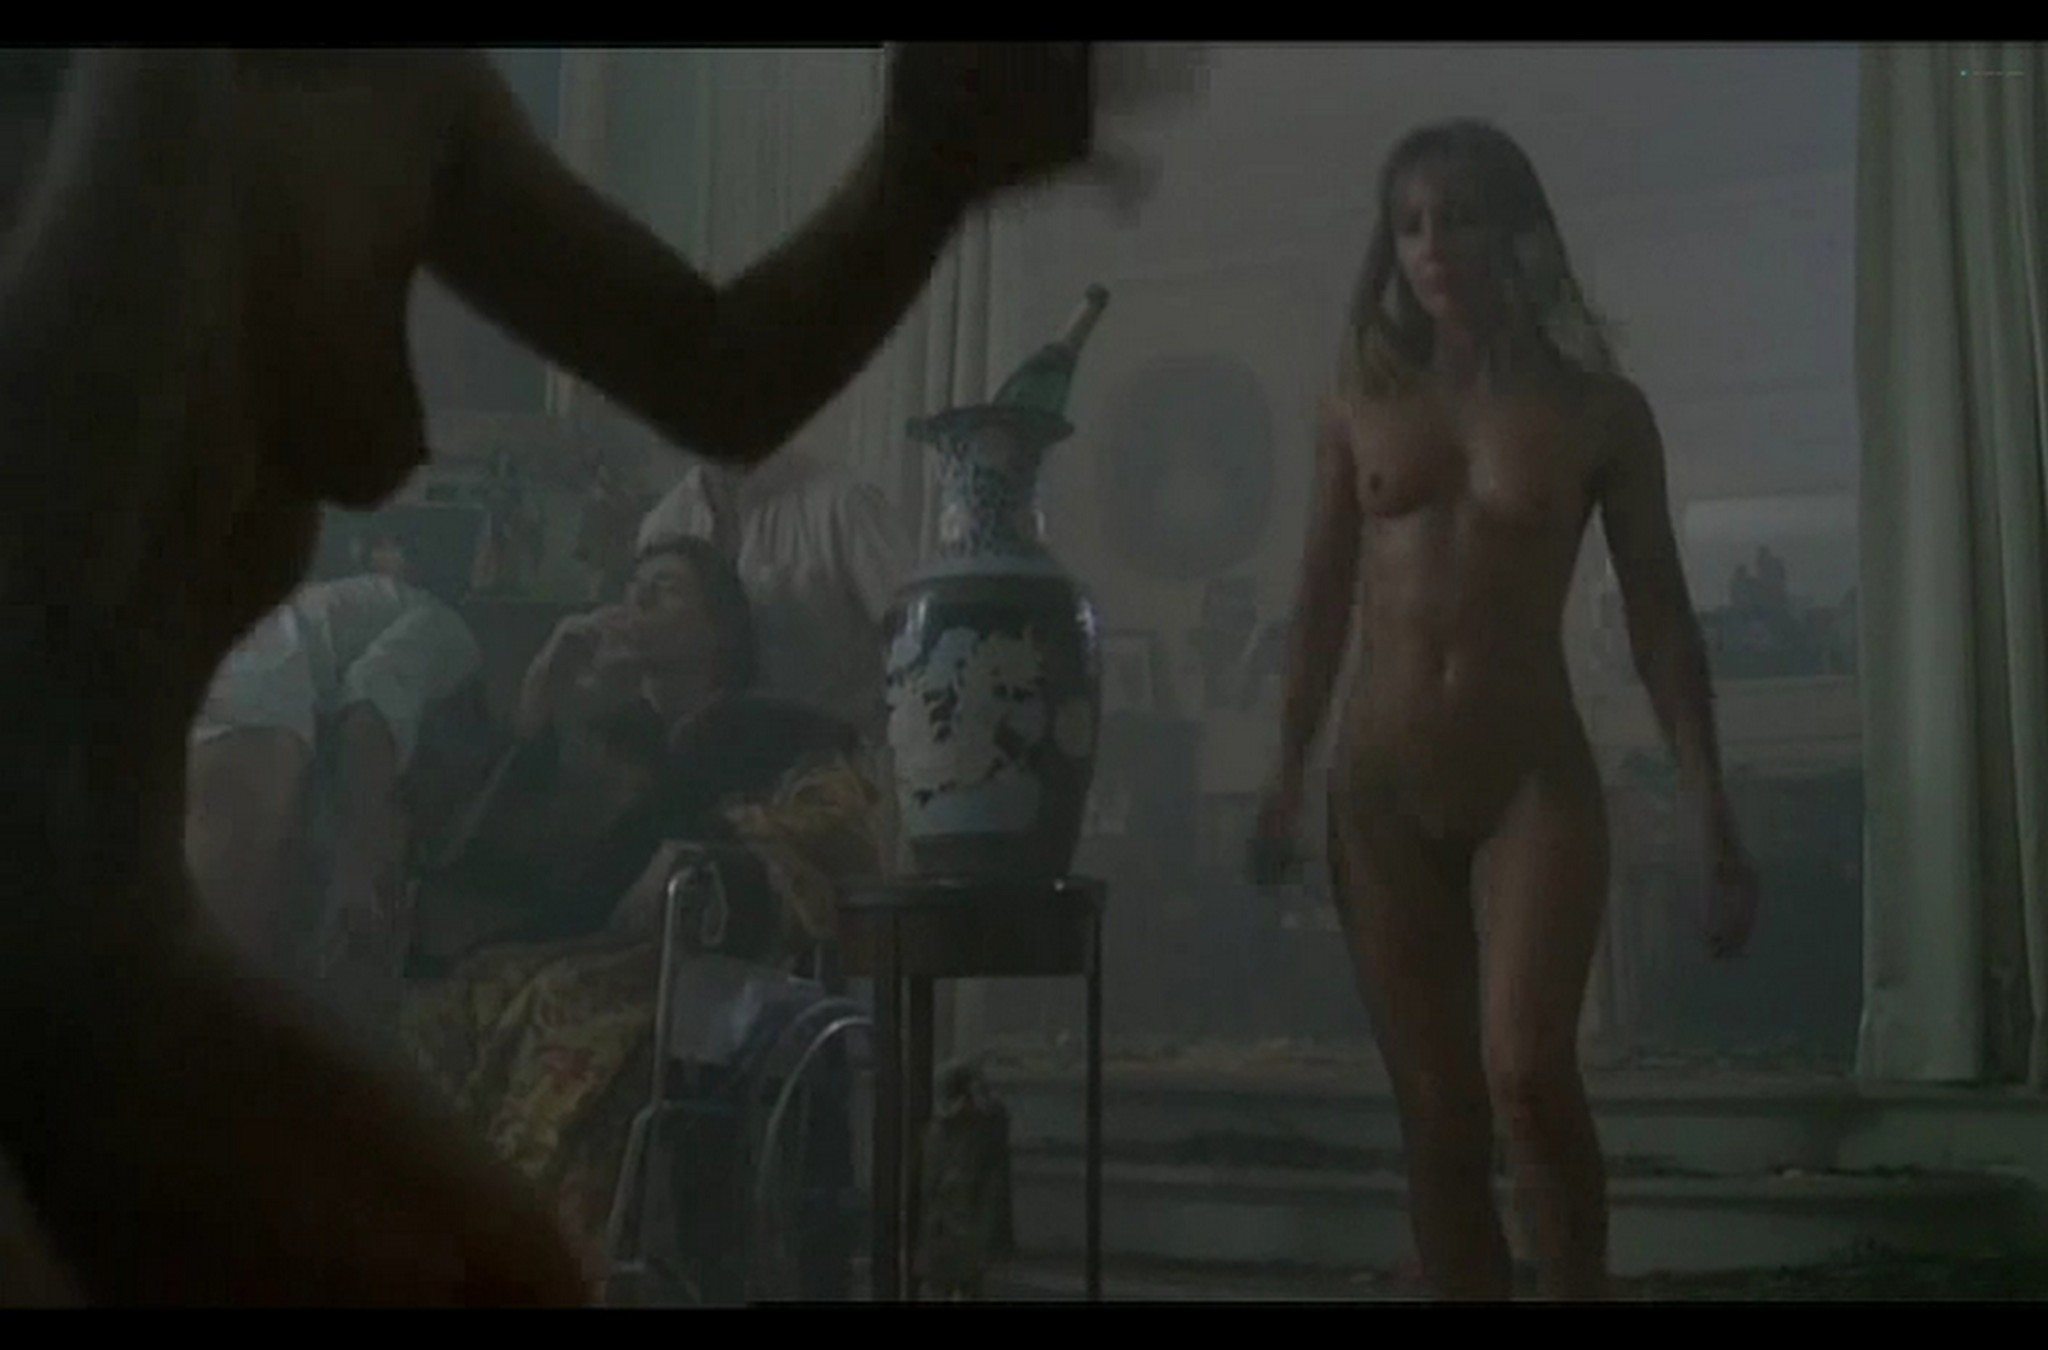 Sophie Marceau nude full frontal Christiane Jean nude too Lamour braque FR 1985 DvDrip 014